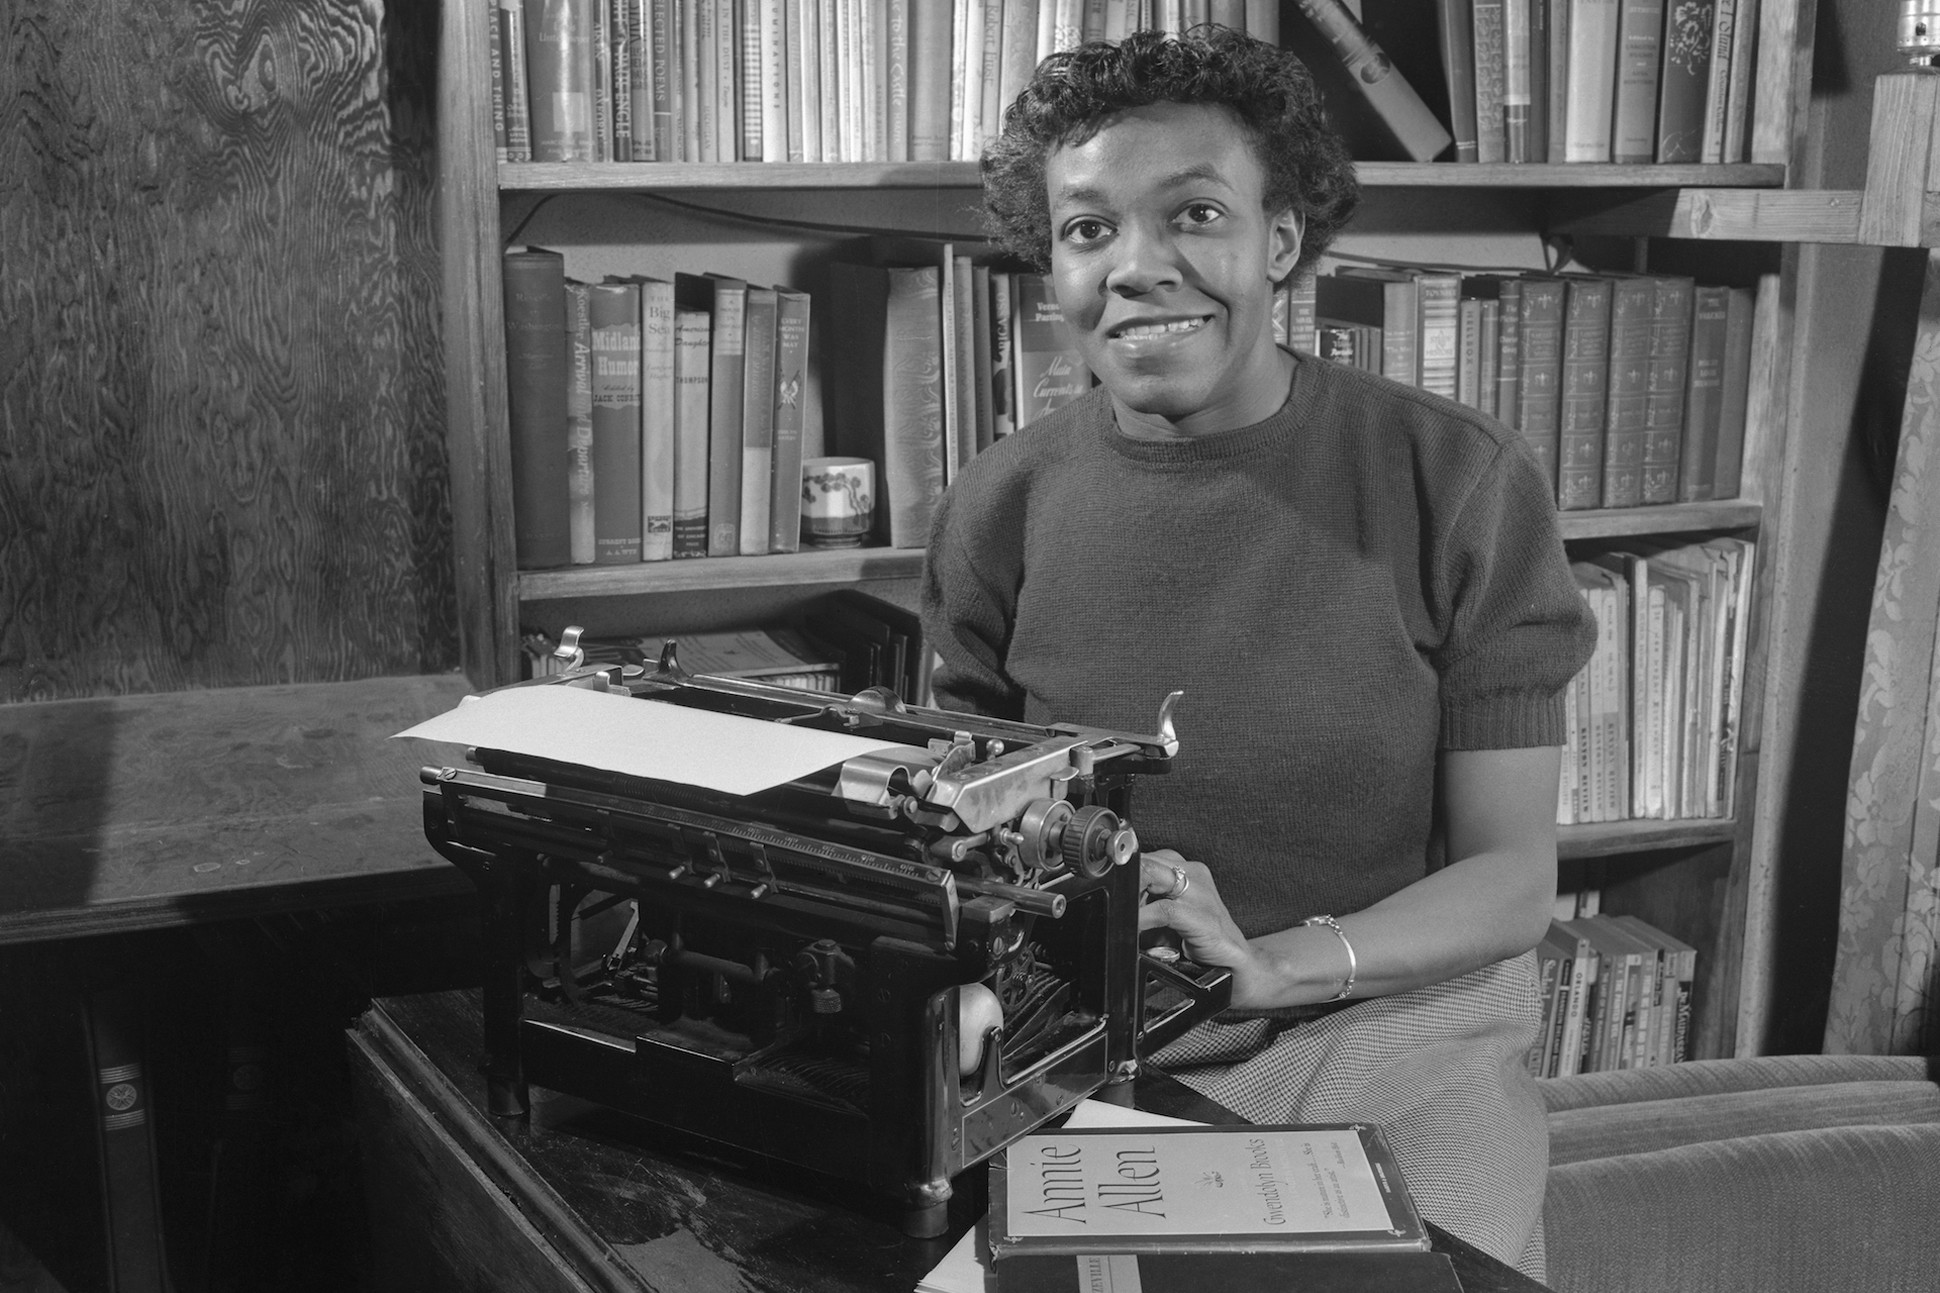 Black and white photography of poet Gwendolyn Brooks at her typewriter.